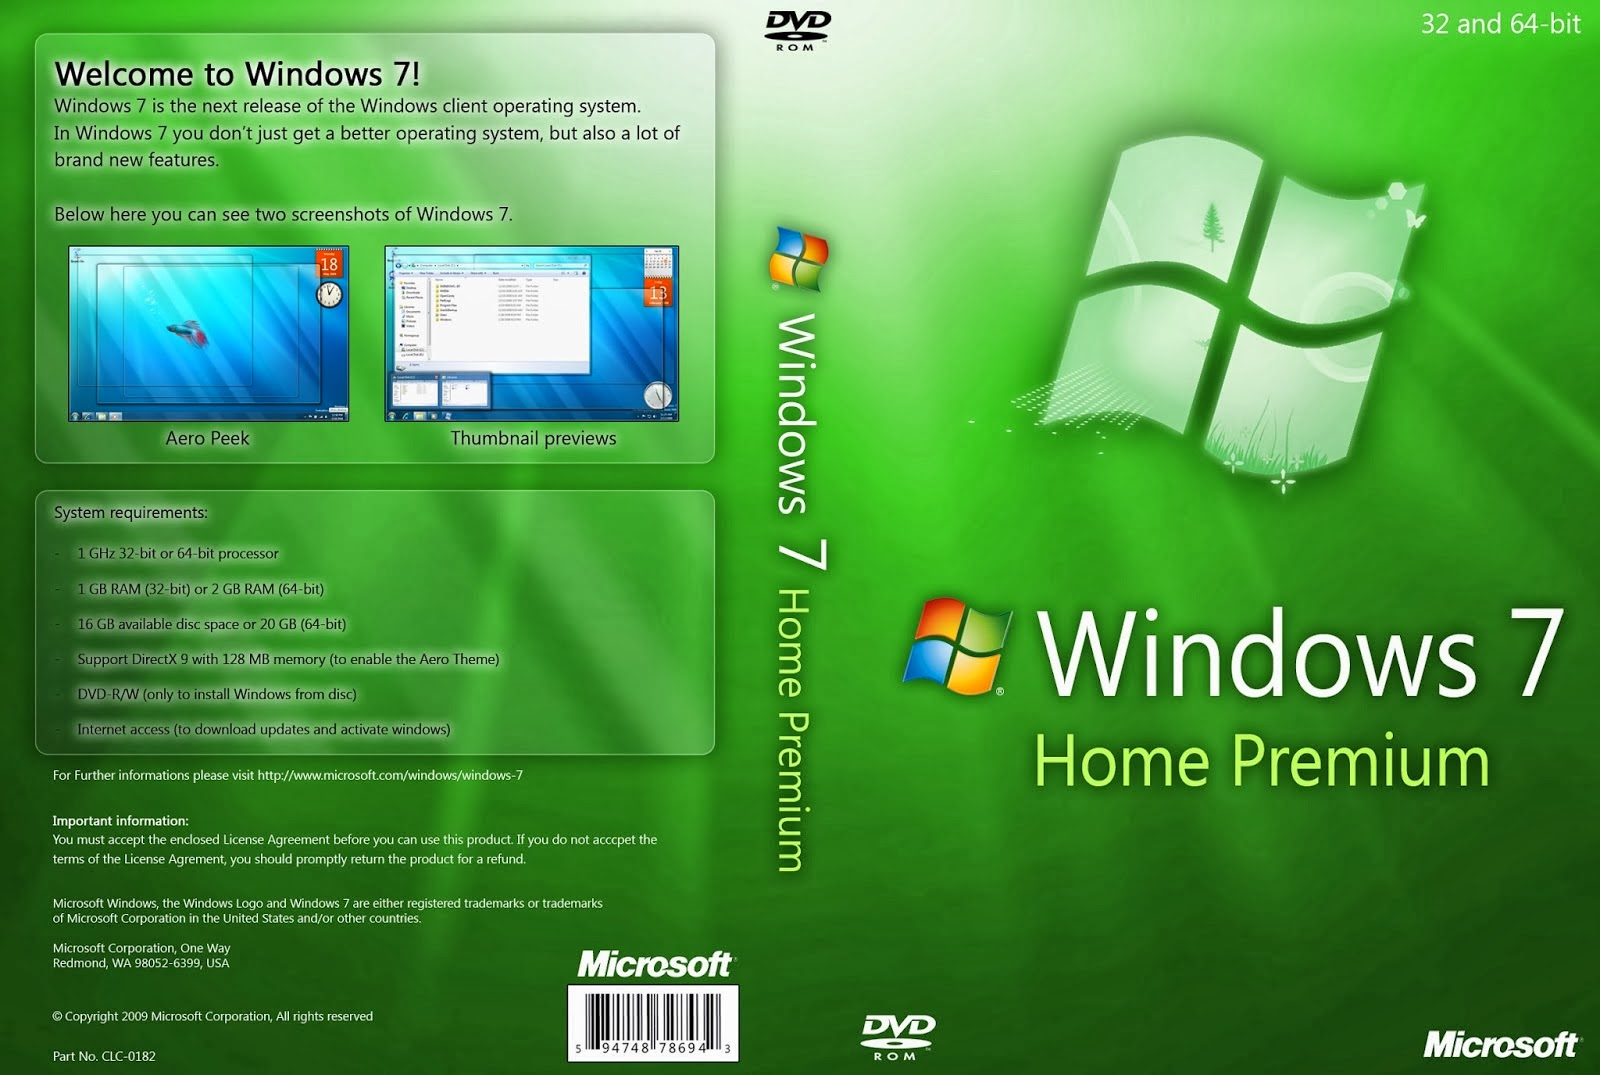 microsoft windows 7 official iso download links